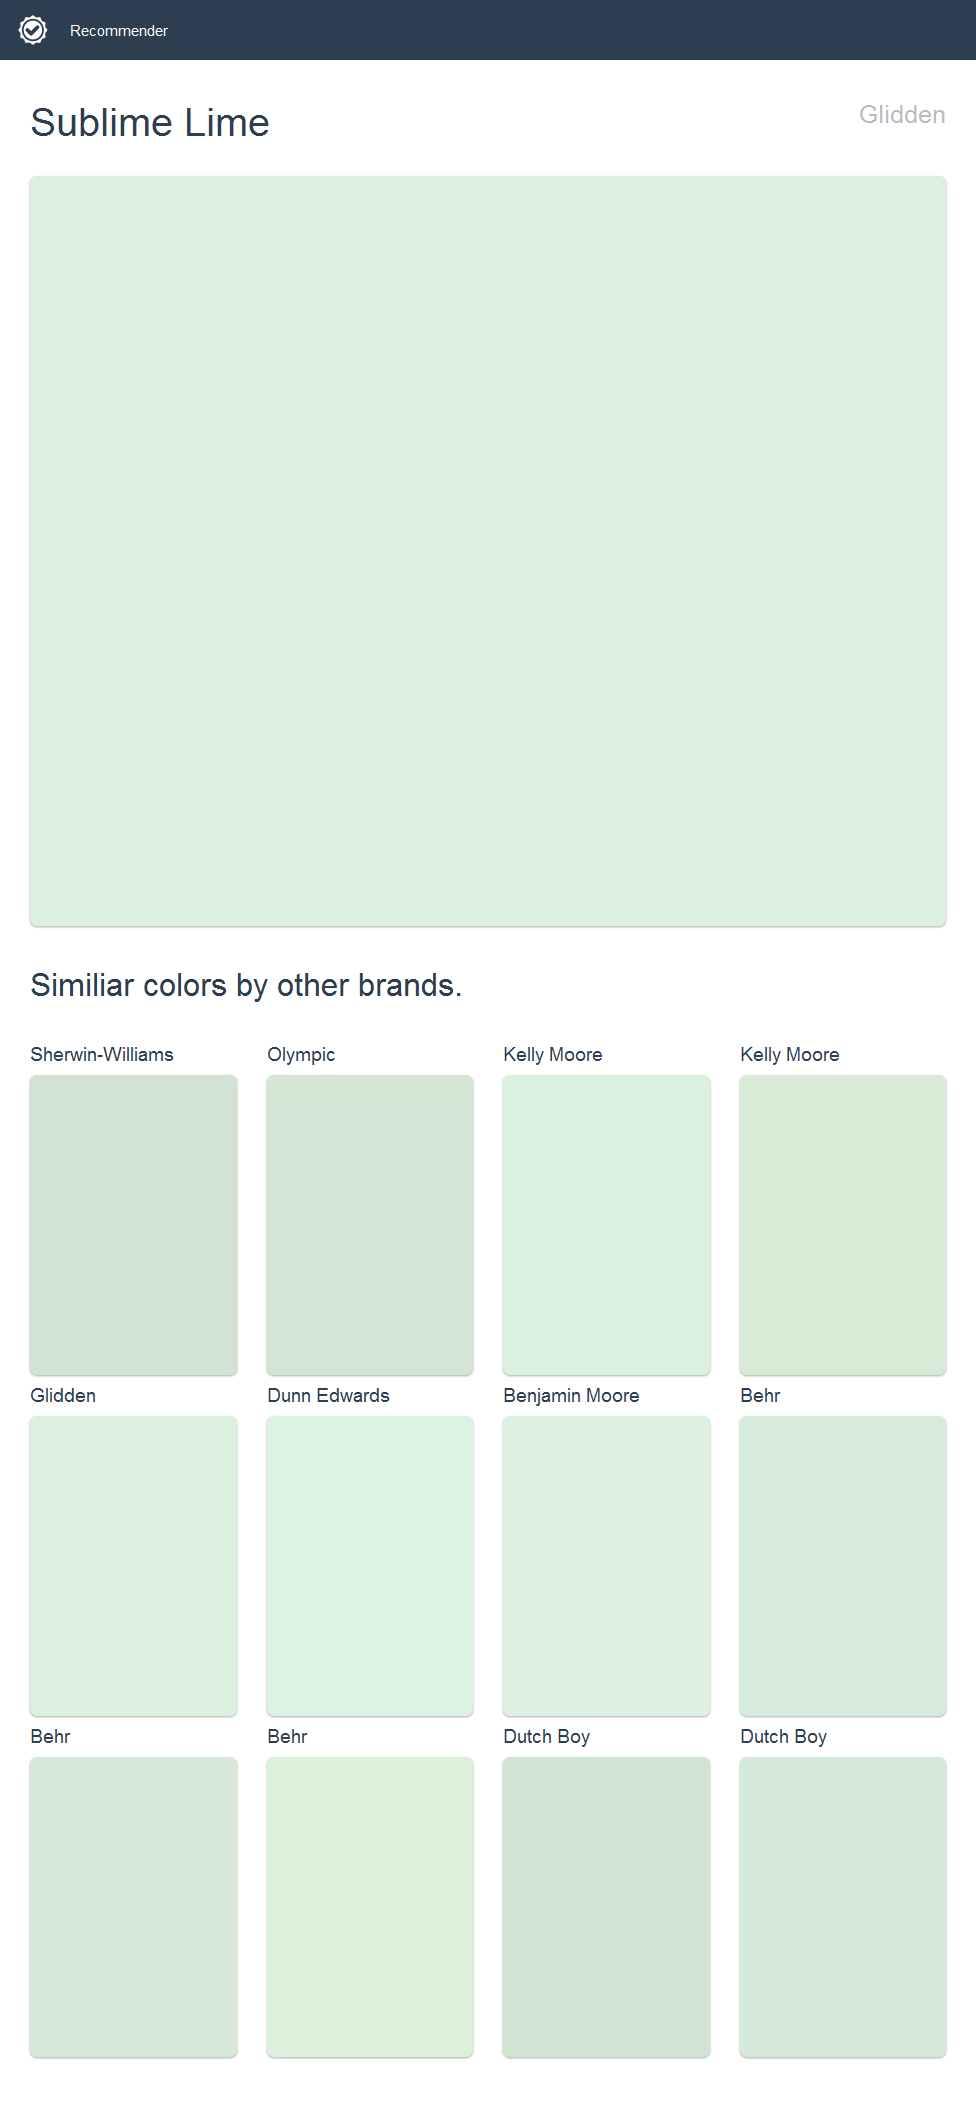 Sublime Lime, Glidden. Click the image to see similiar colors by ...